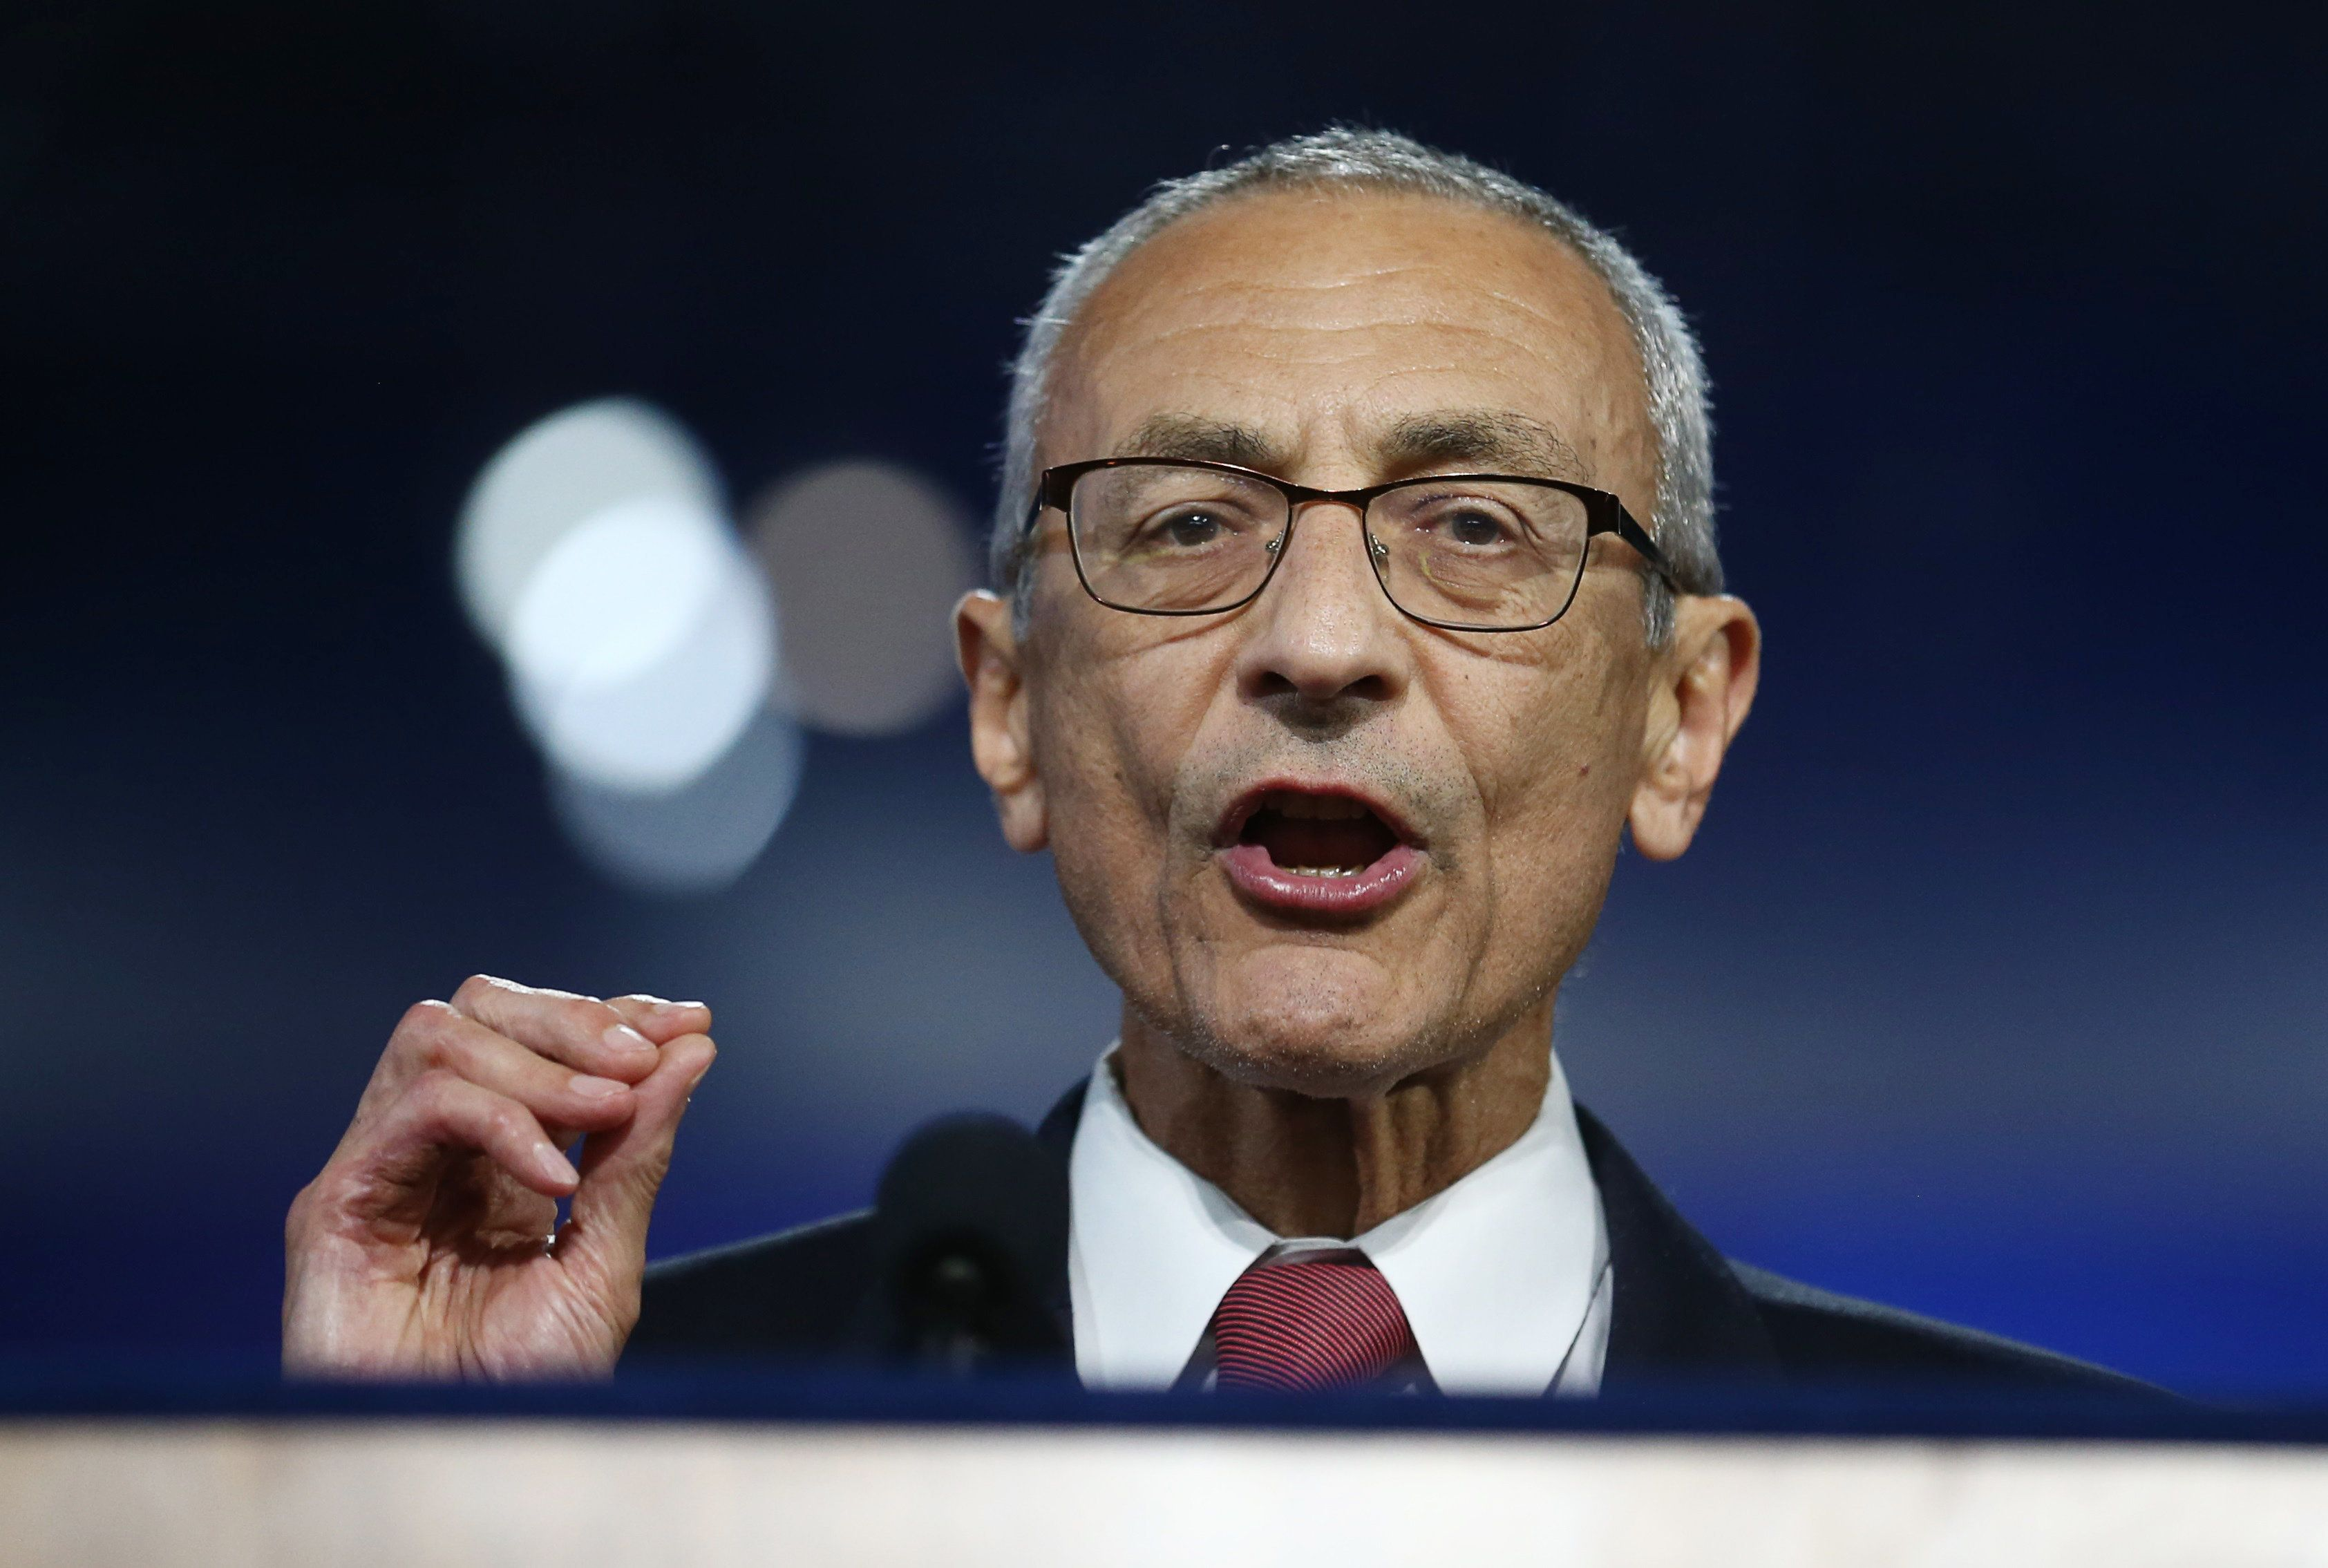 John Podesta Says 'Forces Within The FBI' Wanted Hillary Clinton To